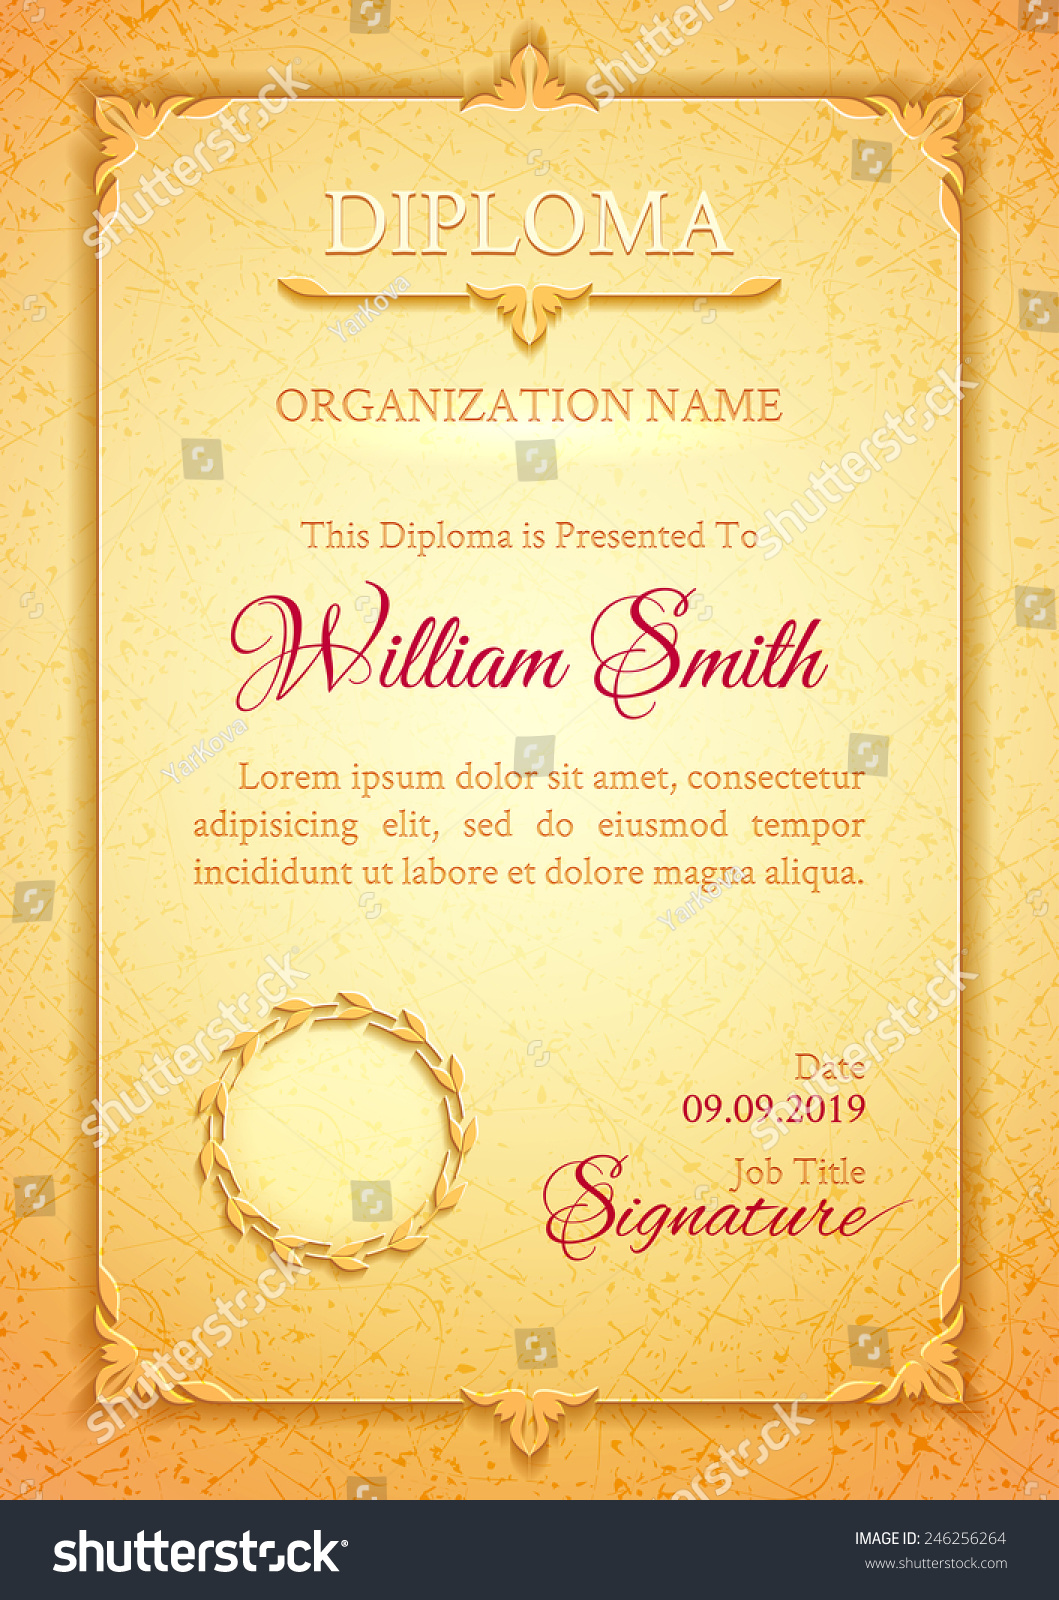 light golden classic diploma marble texture stock vector  light golden classic diploma a marble texture vintage decorative elements and frame space